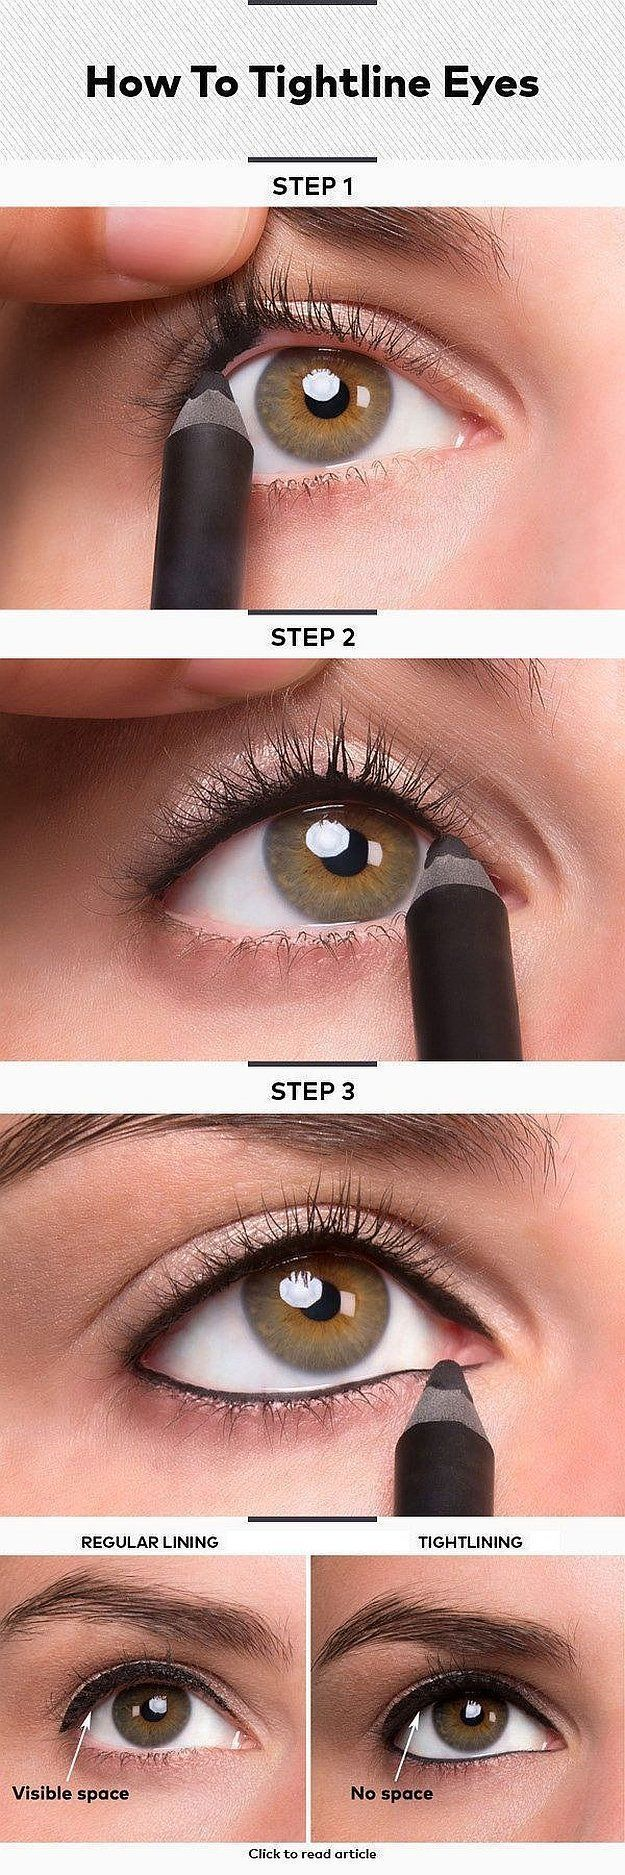 best lashes images on pinterest eye brows beauty makeup and